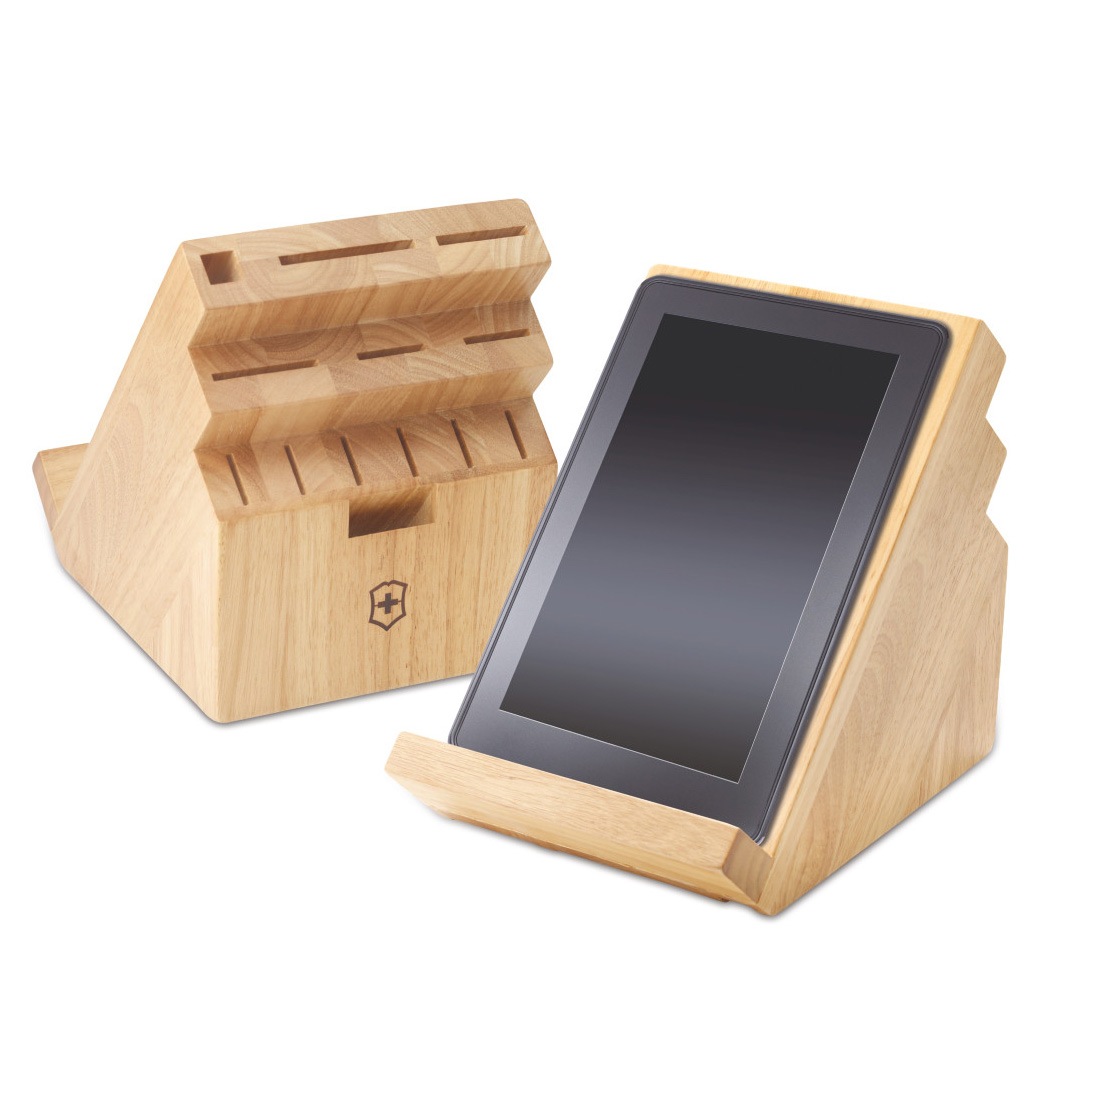 Knife Block Ipad Stand Cutting Board